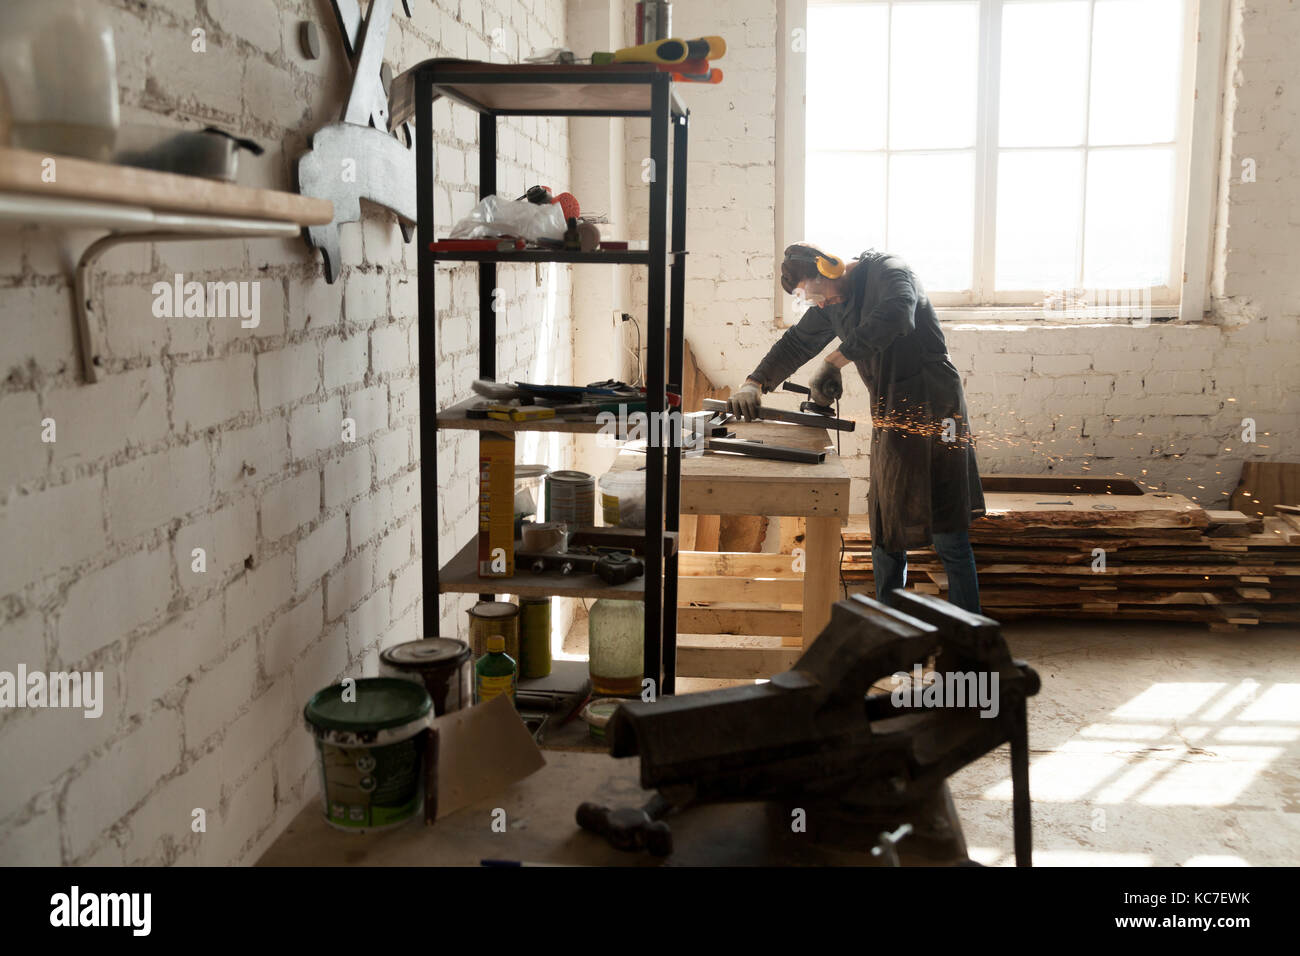 Skilled cabinet maker working in small workshop - Stock Image